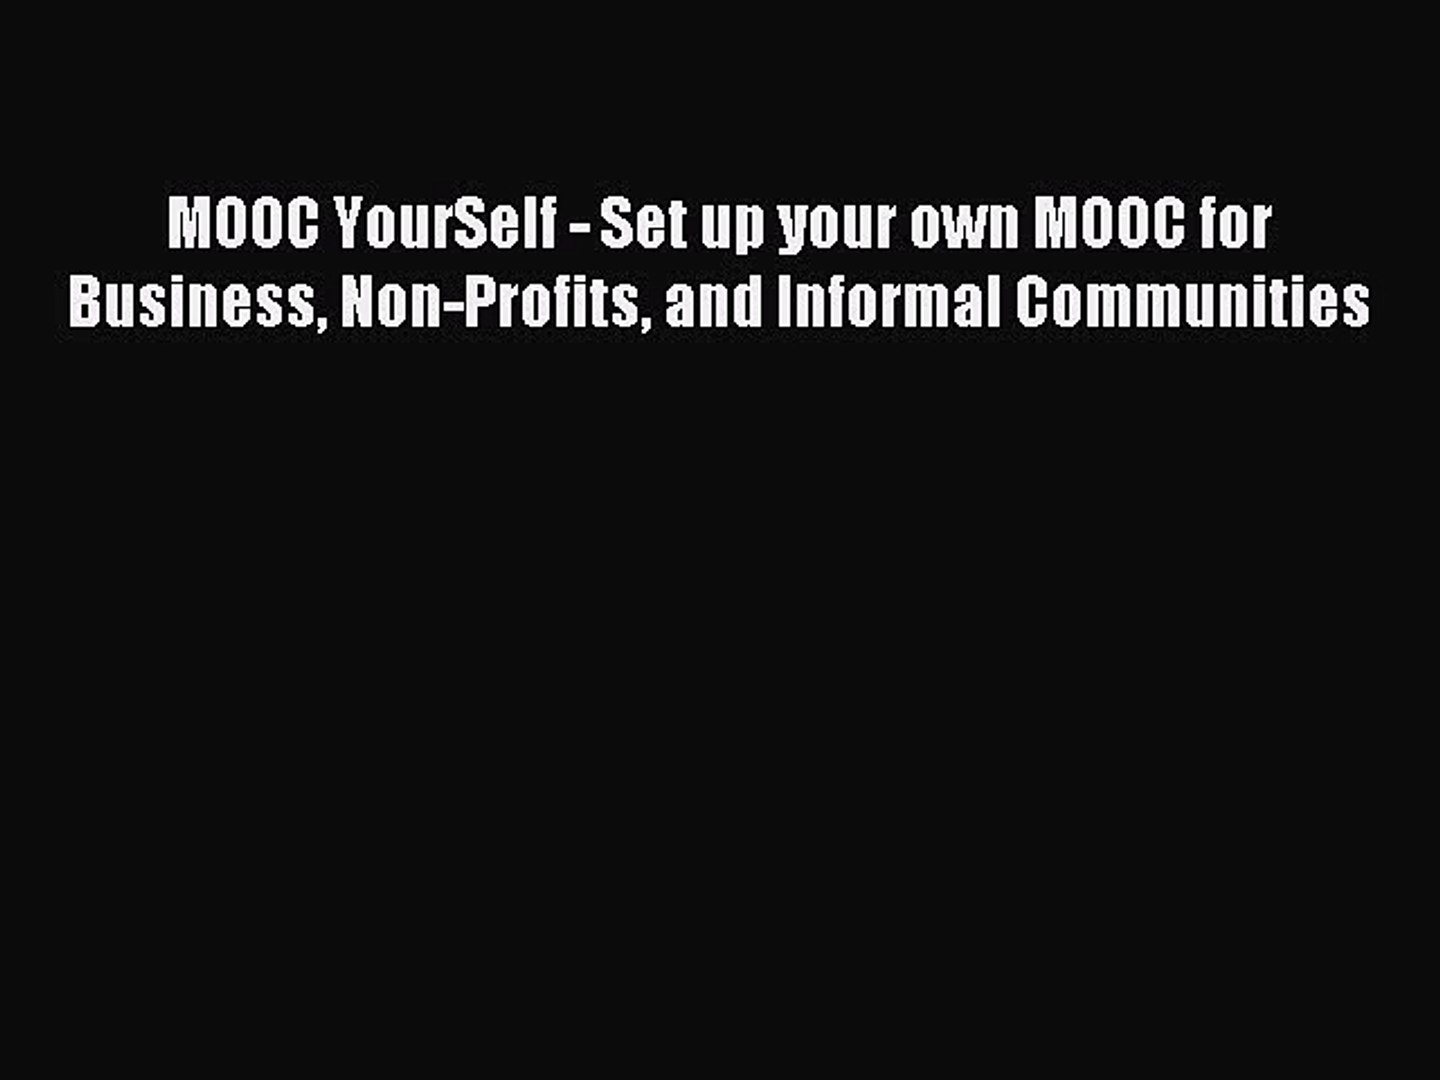 new book MOOC YourSelf - Set up your own MOOC for Business Non-Profits and Informal Communities